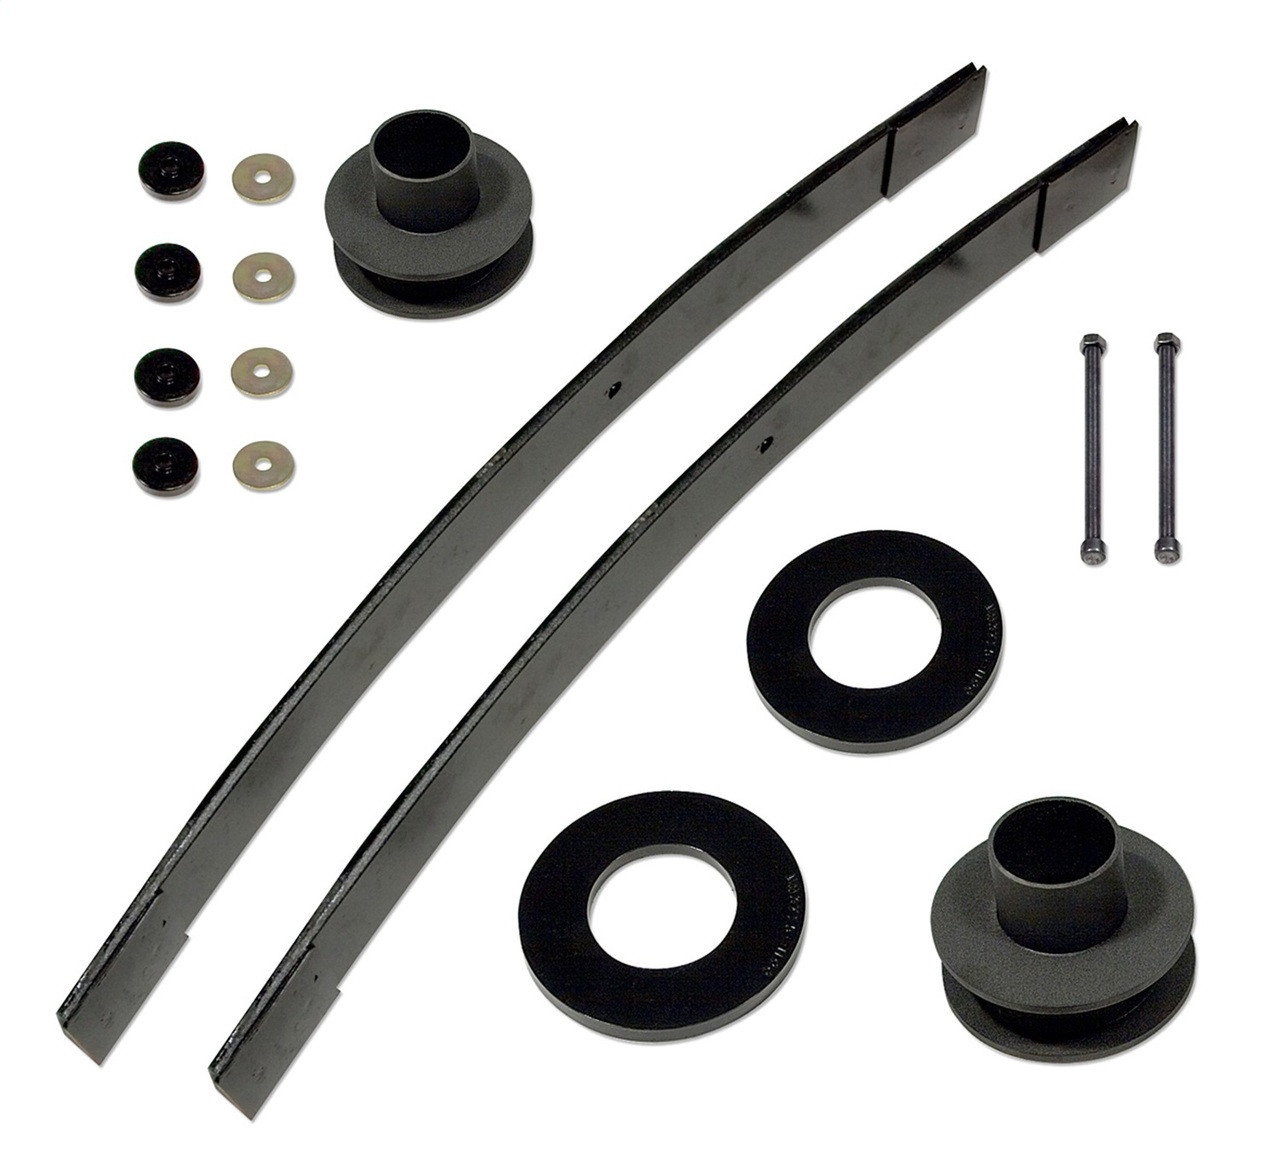 "Rough Country 346 23 Ram 2500 3500 Suspension Lift Kit 5: Tuff Country® 22980 Lift Kit 2.5"" Ford F-350 Super Duty"